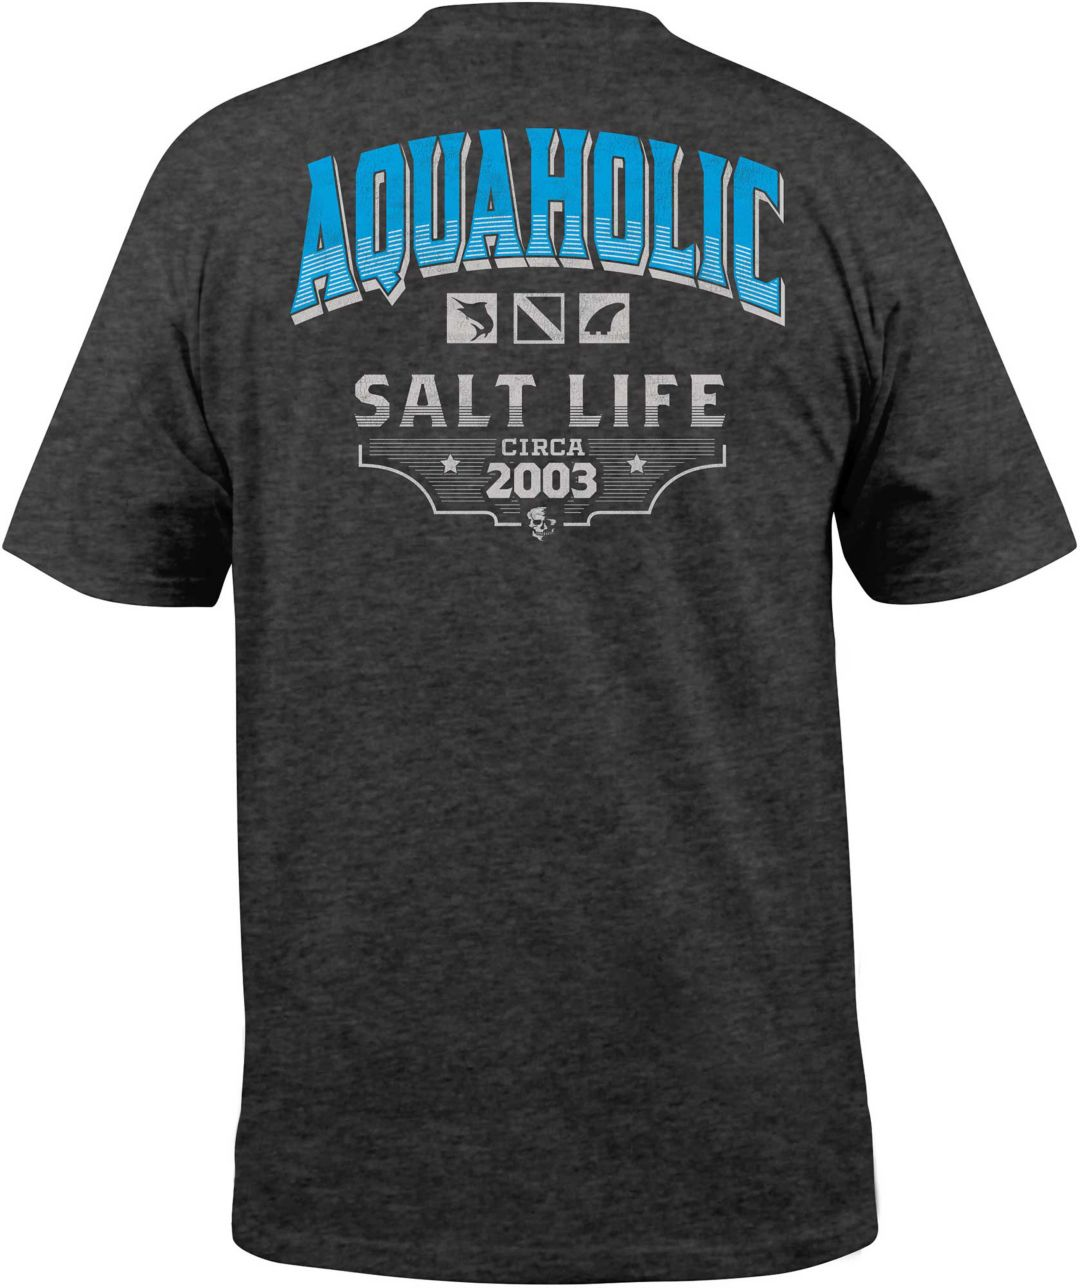 5e49f05d7d85 Salt Life Men's Aquaholic Icons T-Shirt | DICK'S Sporting Goods